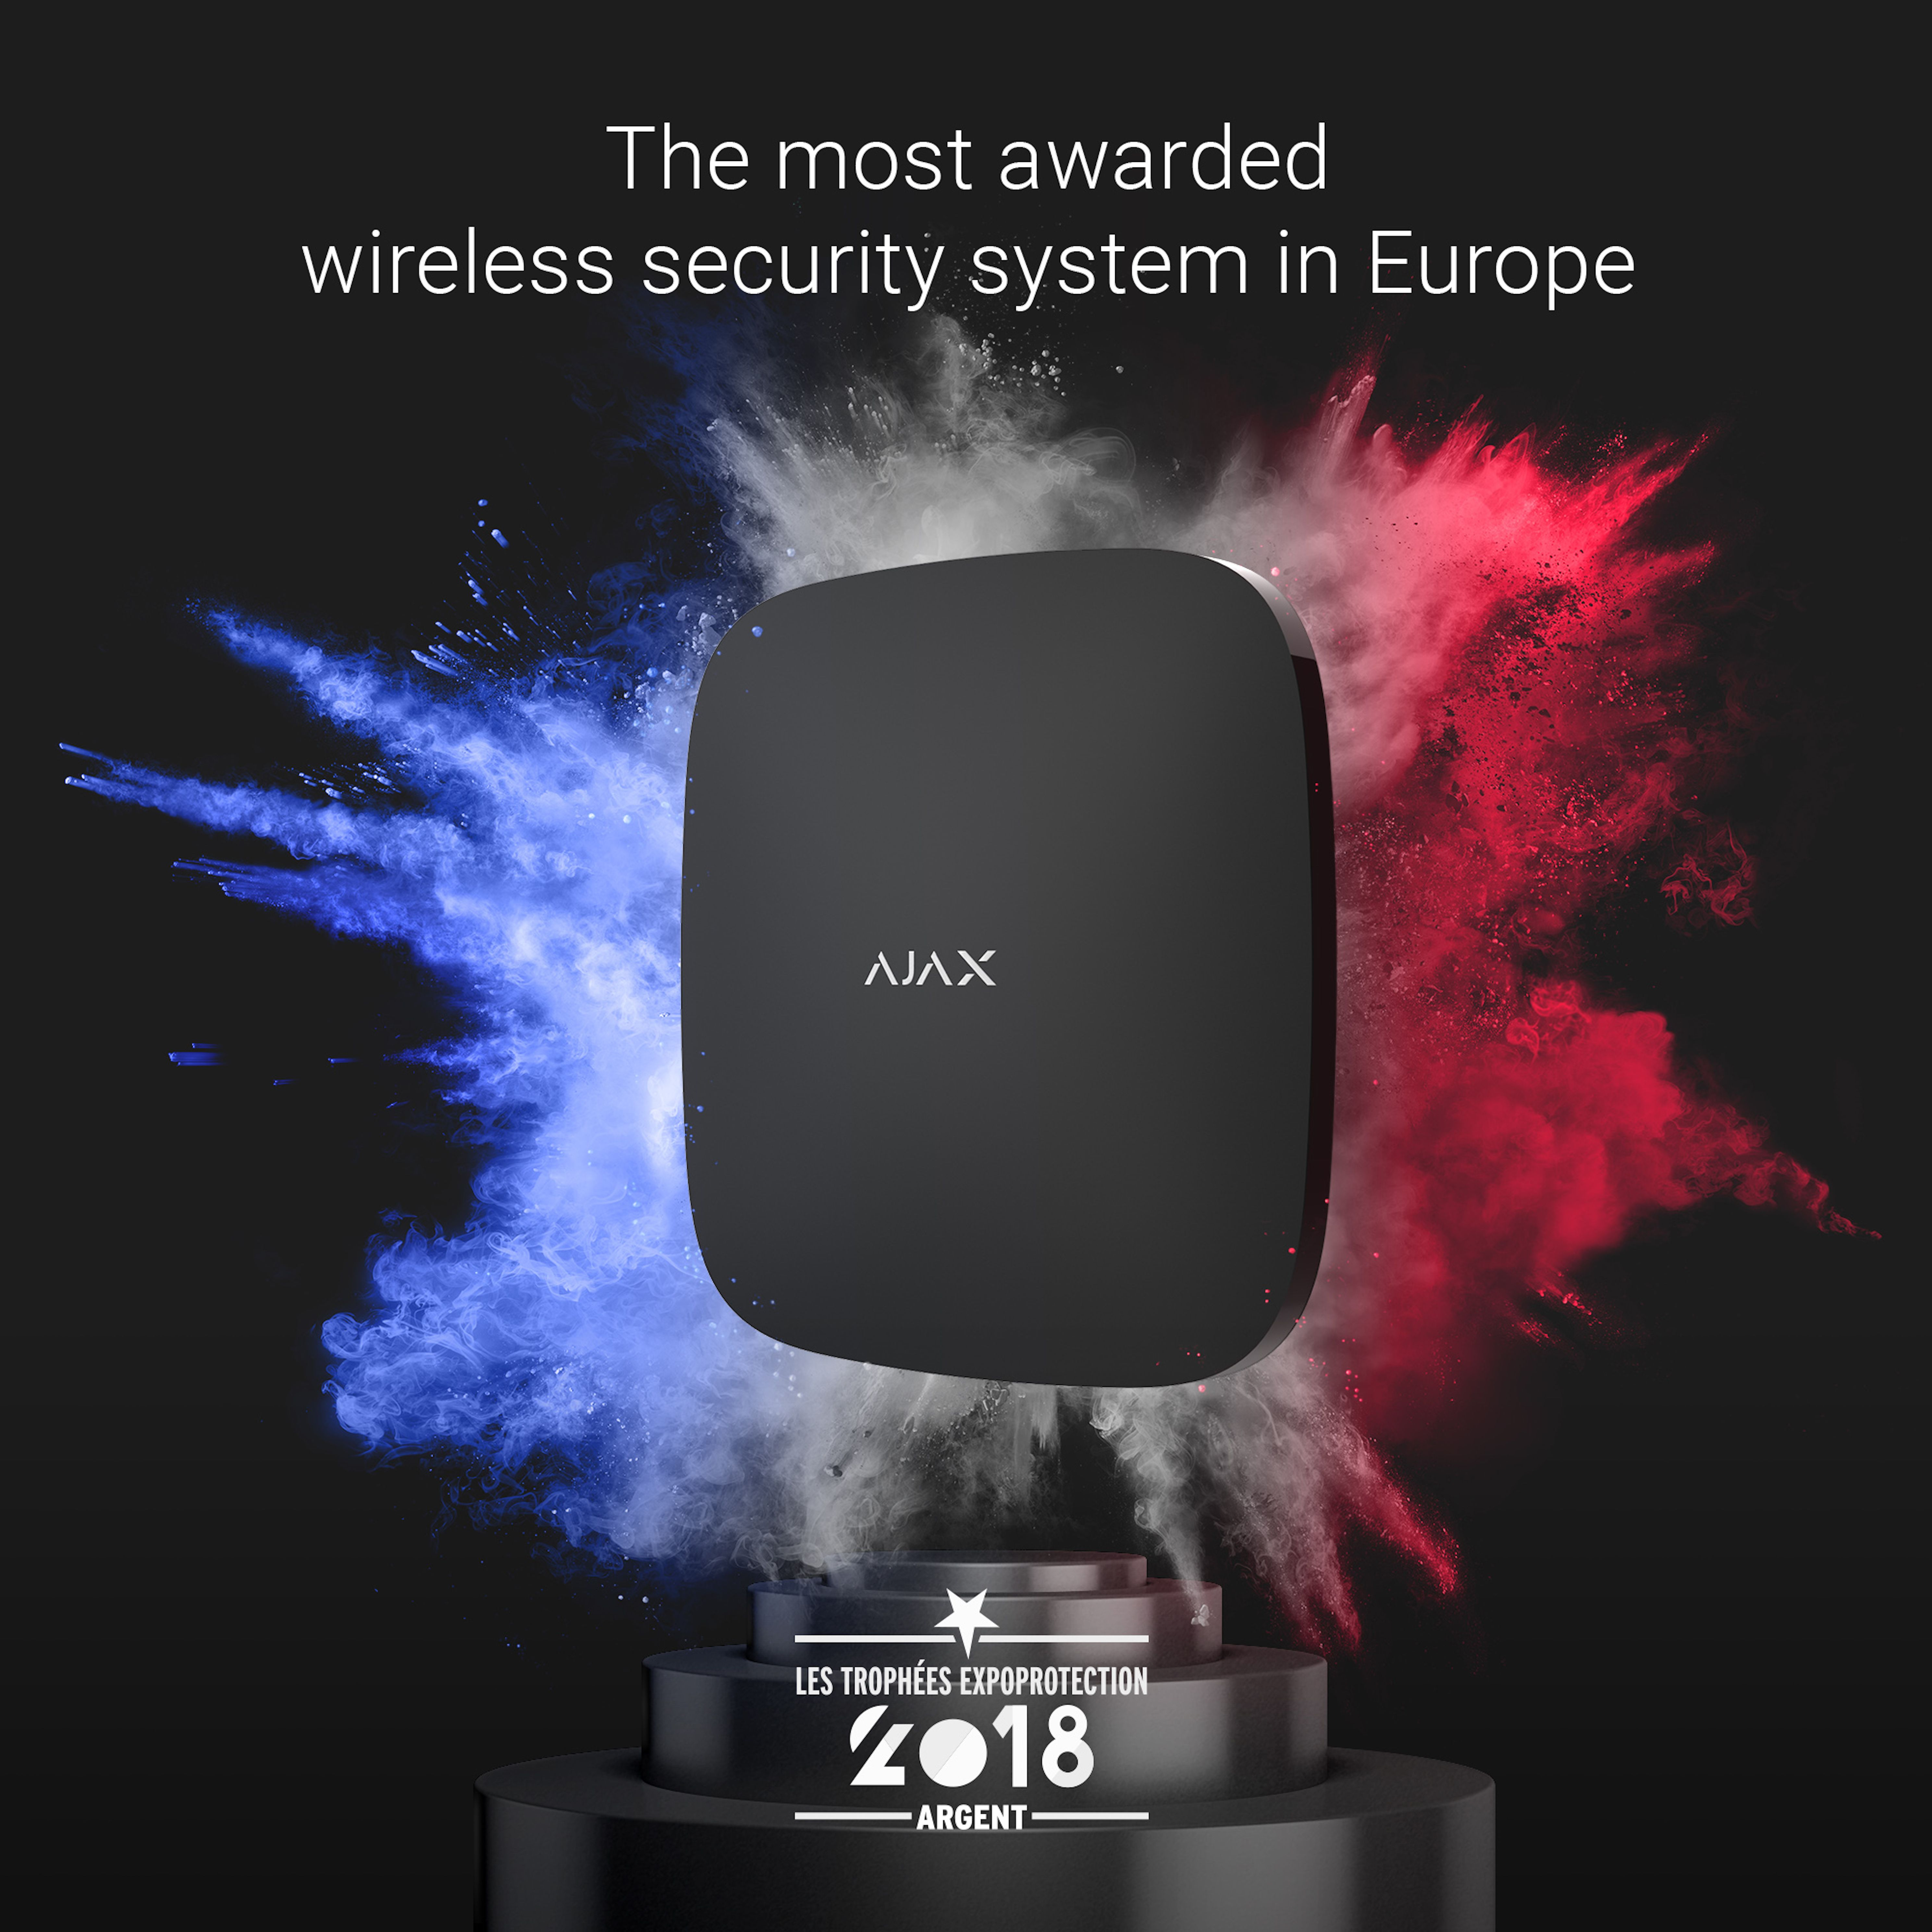 The most awarded wireless security system in Europe